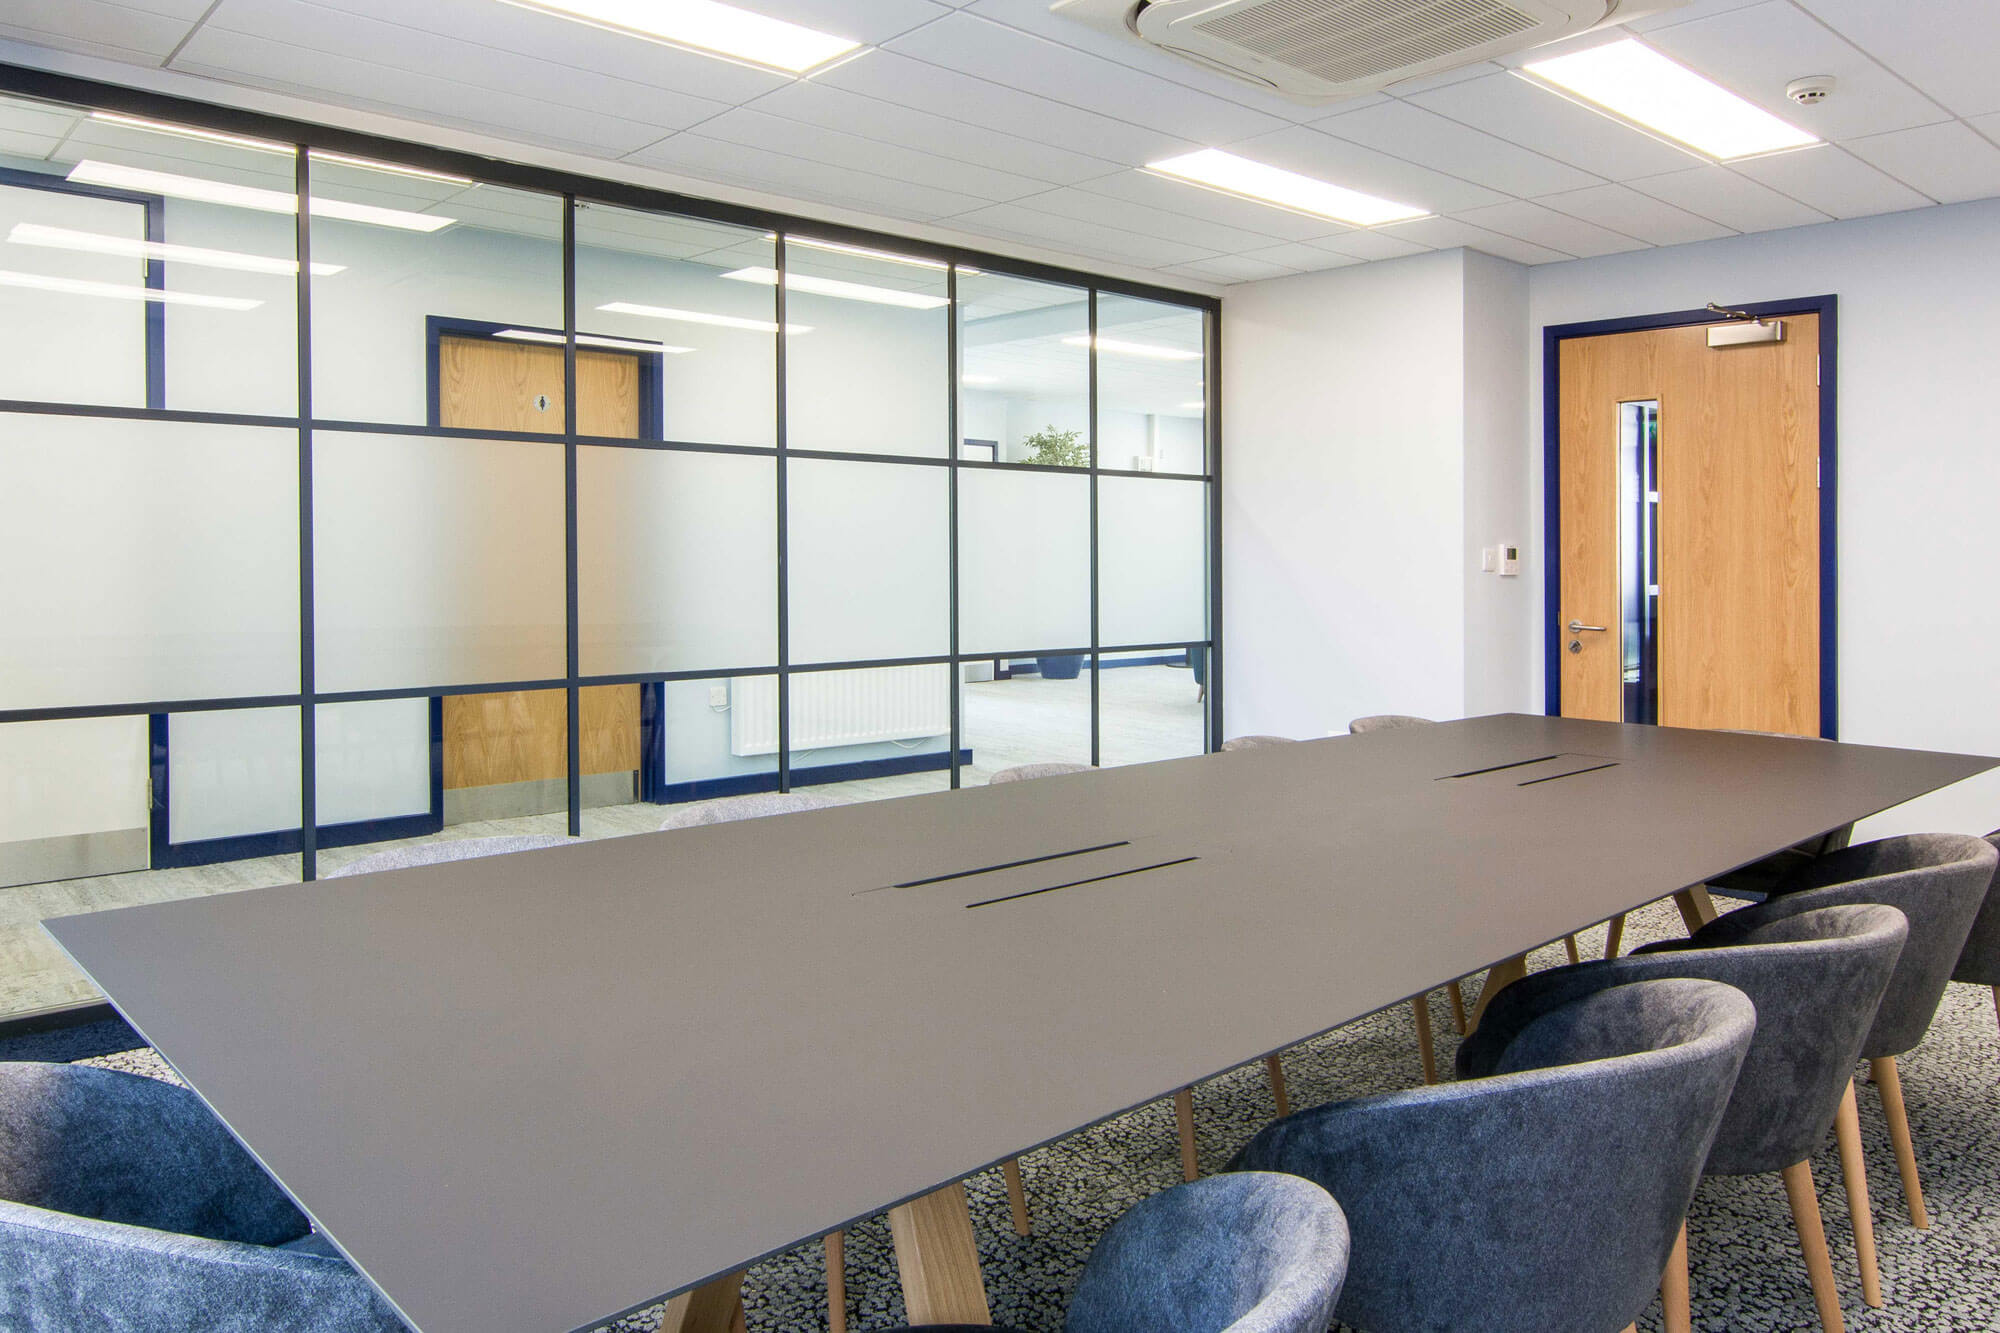 A large meeting room, in front a glass screen